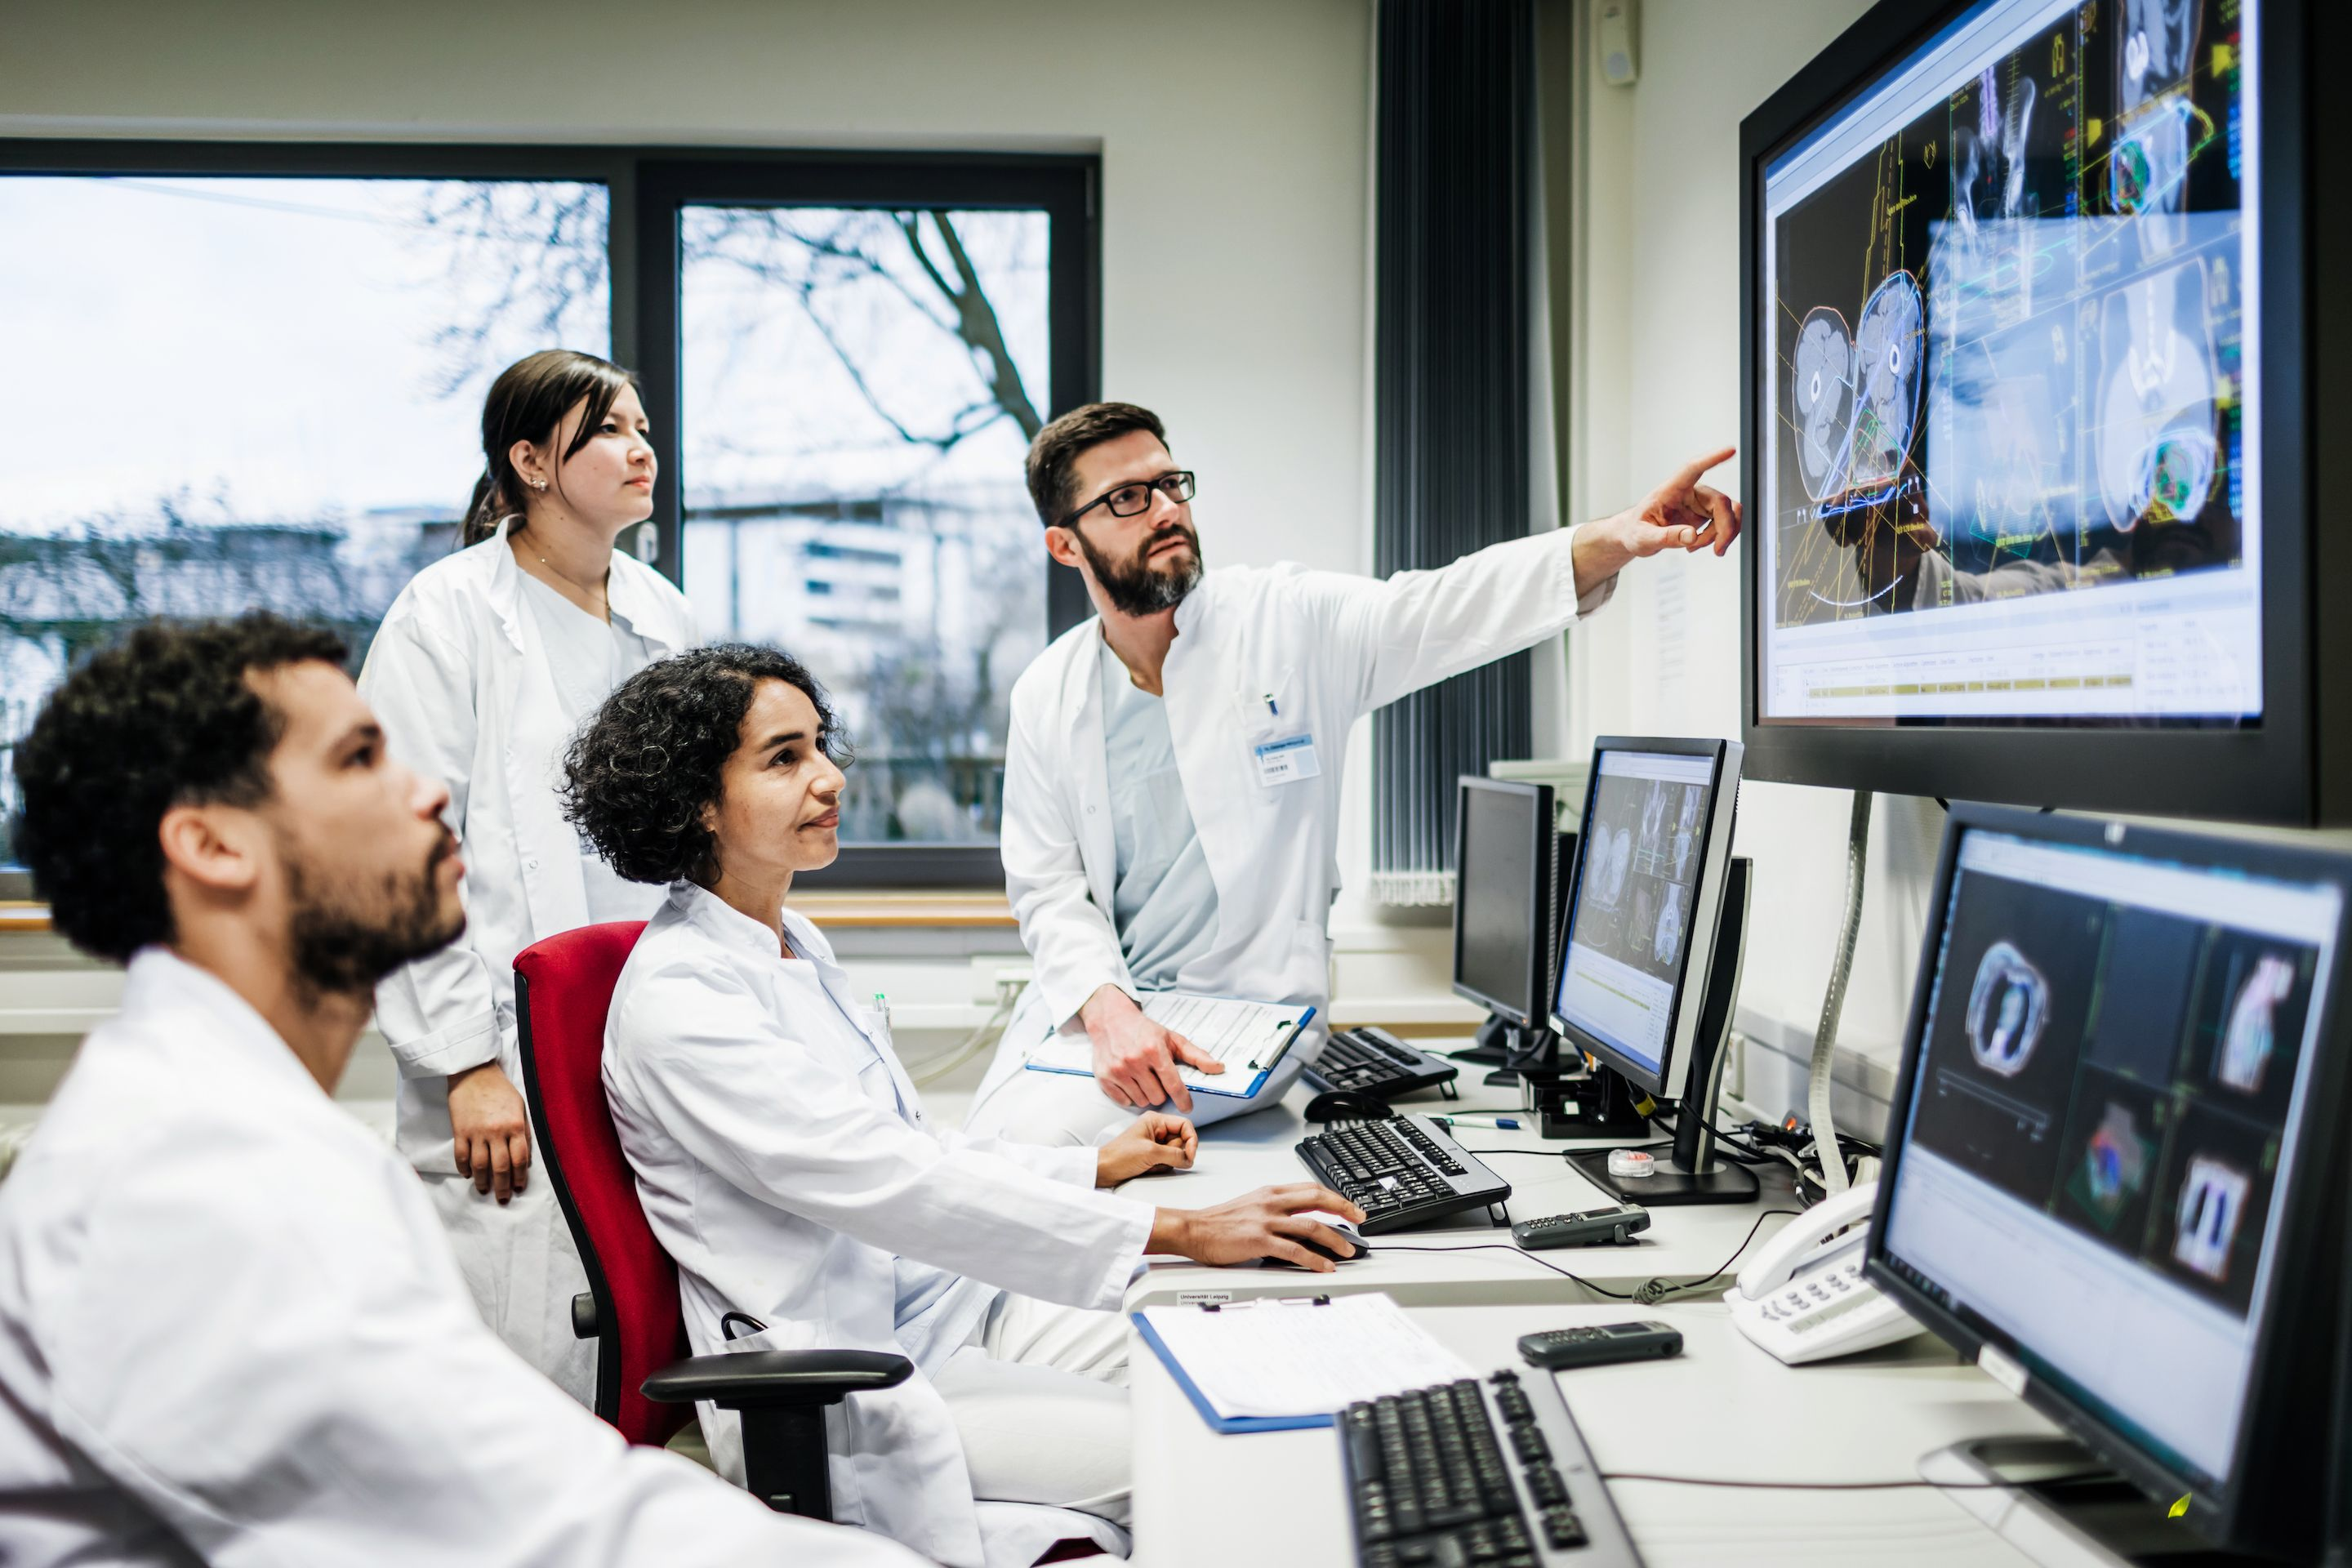 Scientists looking at digital test results